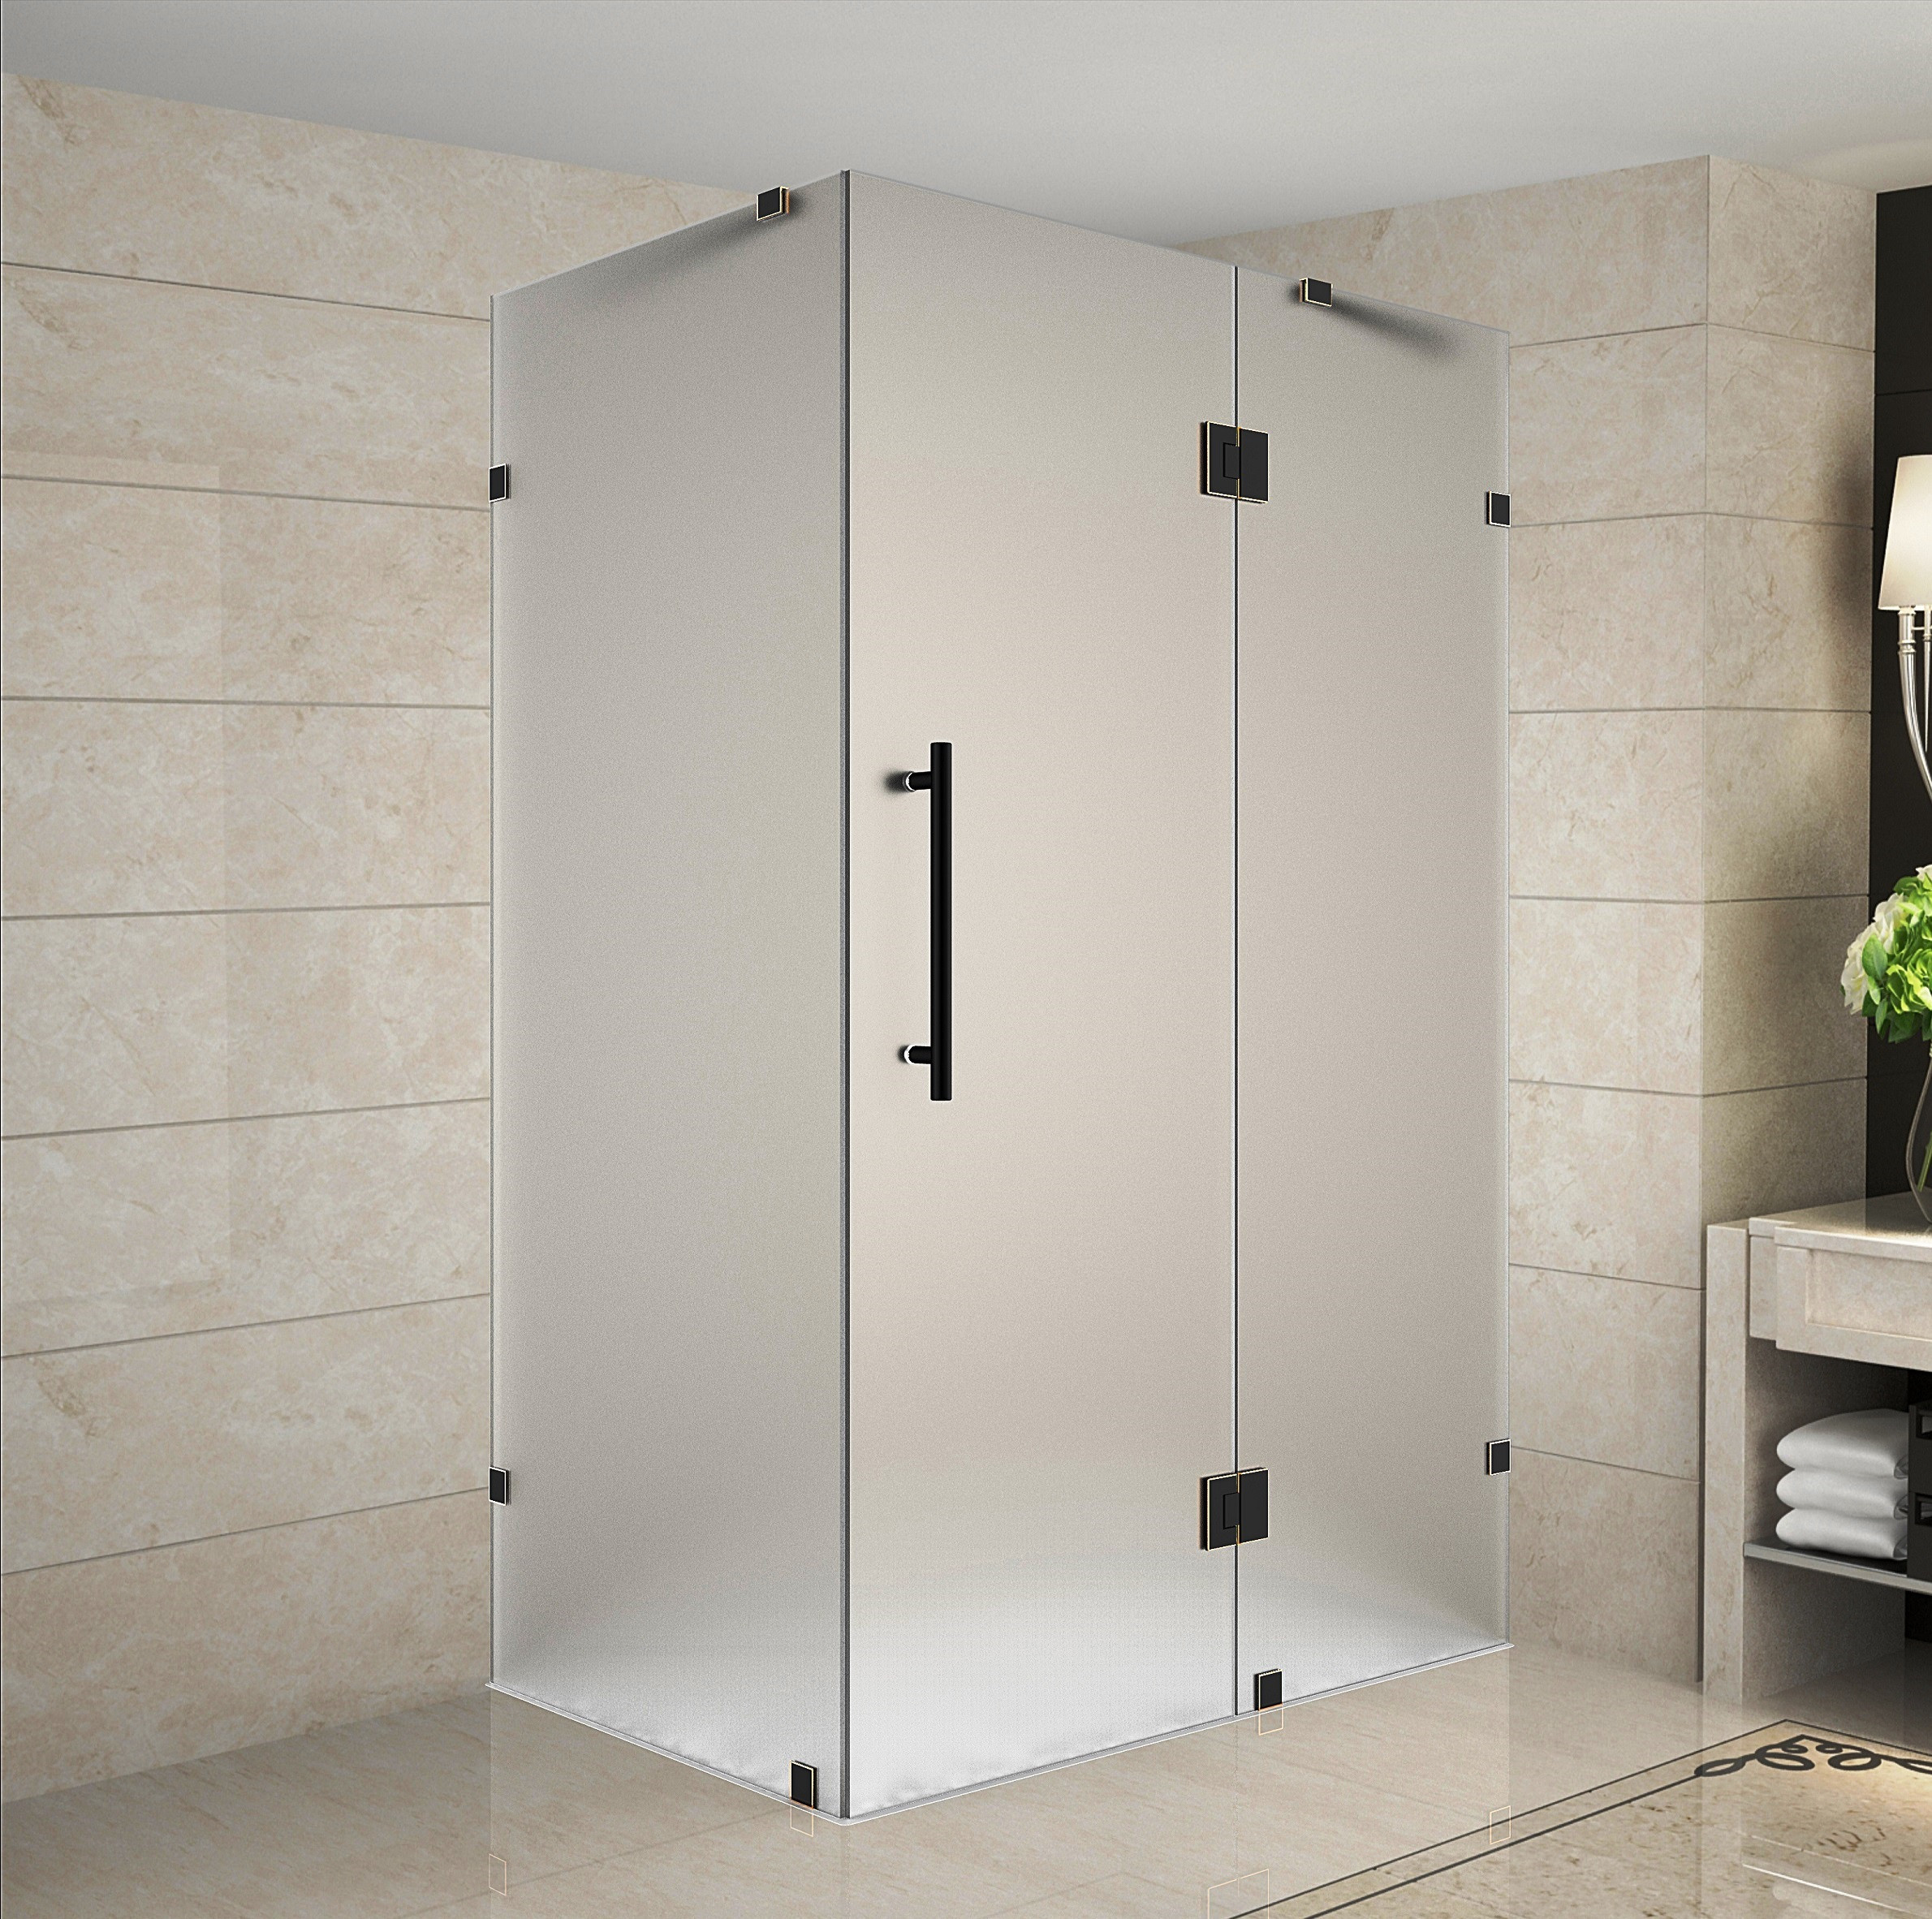 Aston Global SEN987F-ORB-3430-10 Frameless Frosted Glass Shower Enclosure In Oil Rubbed Bronze